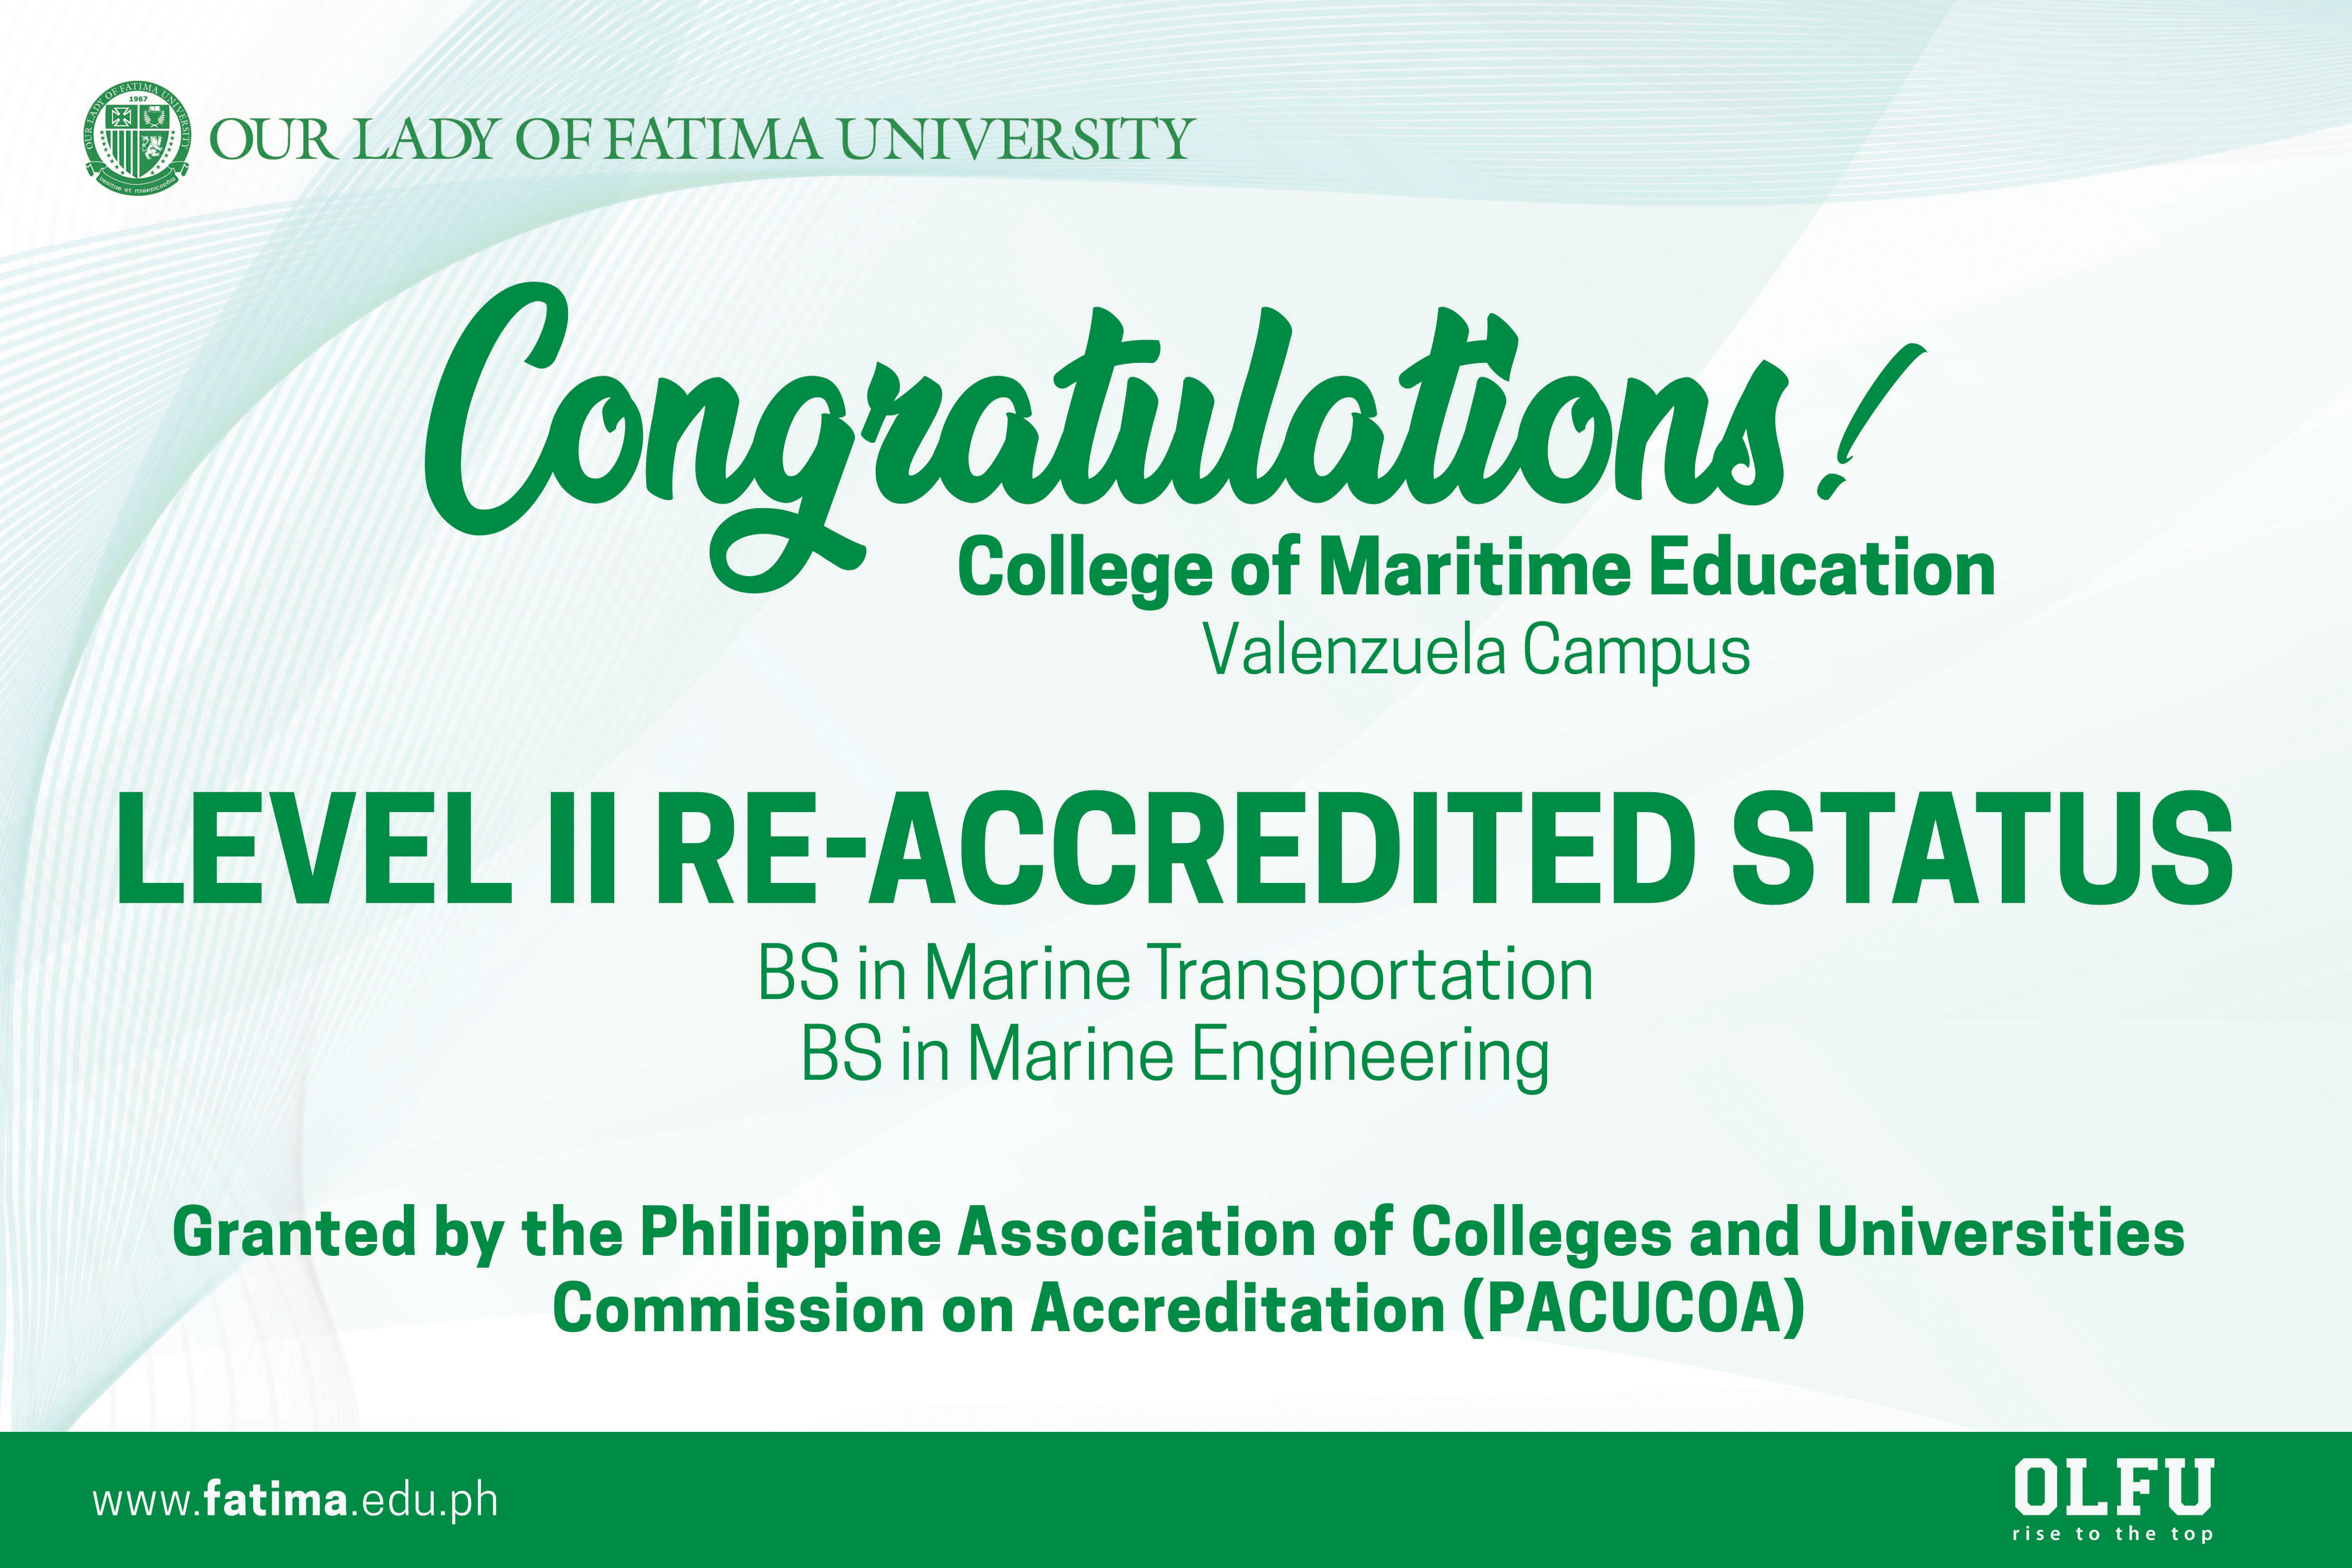 Maritime Programs granted Level II Accreditation by PACUCOA